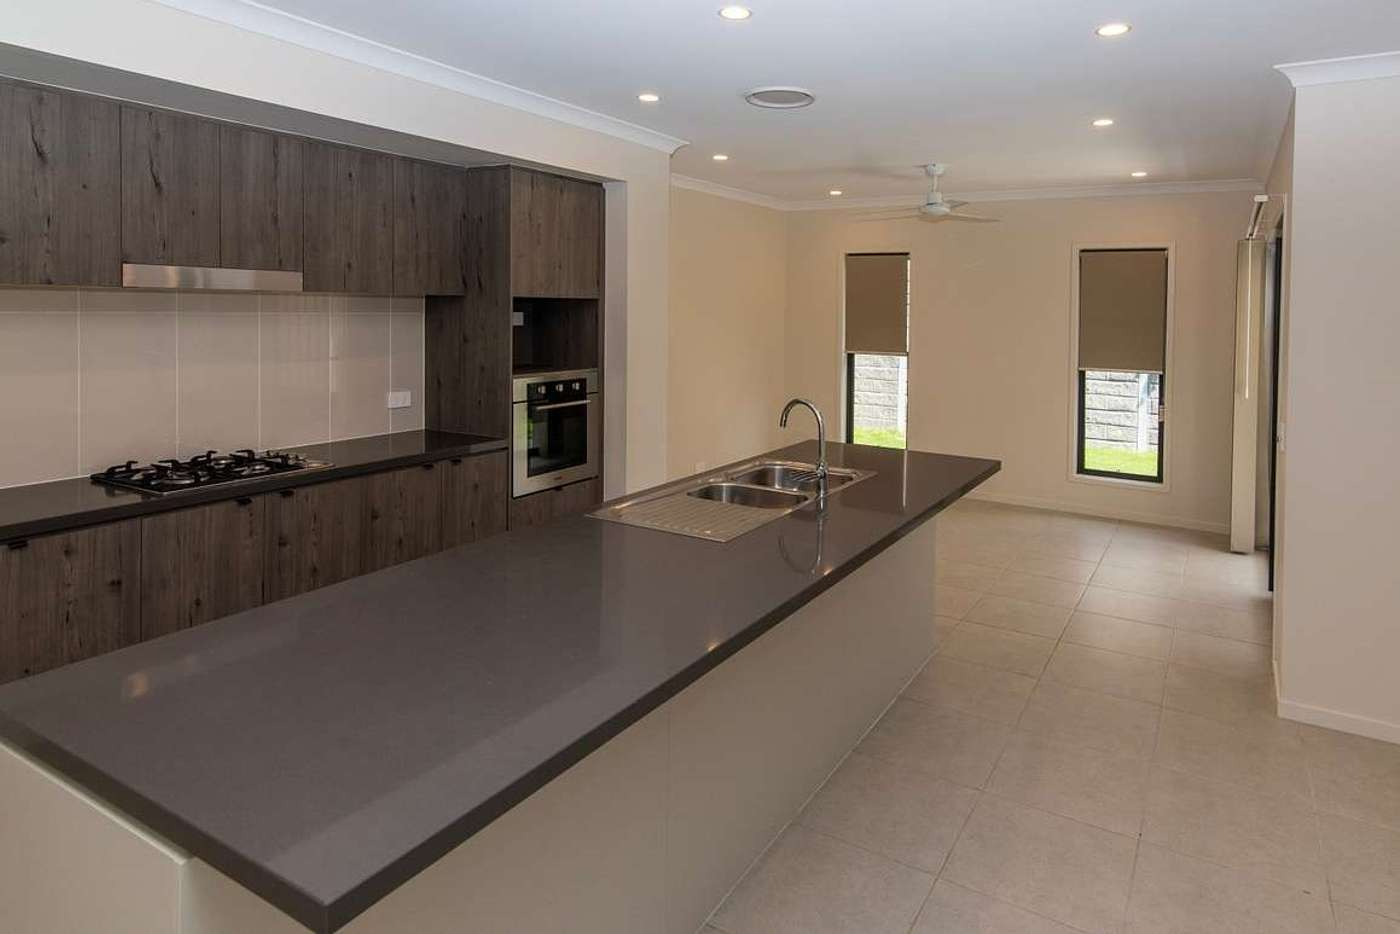 Main view of Homely house listing, 15 Olearia Street, Coomera QLD 4209